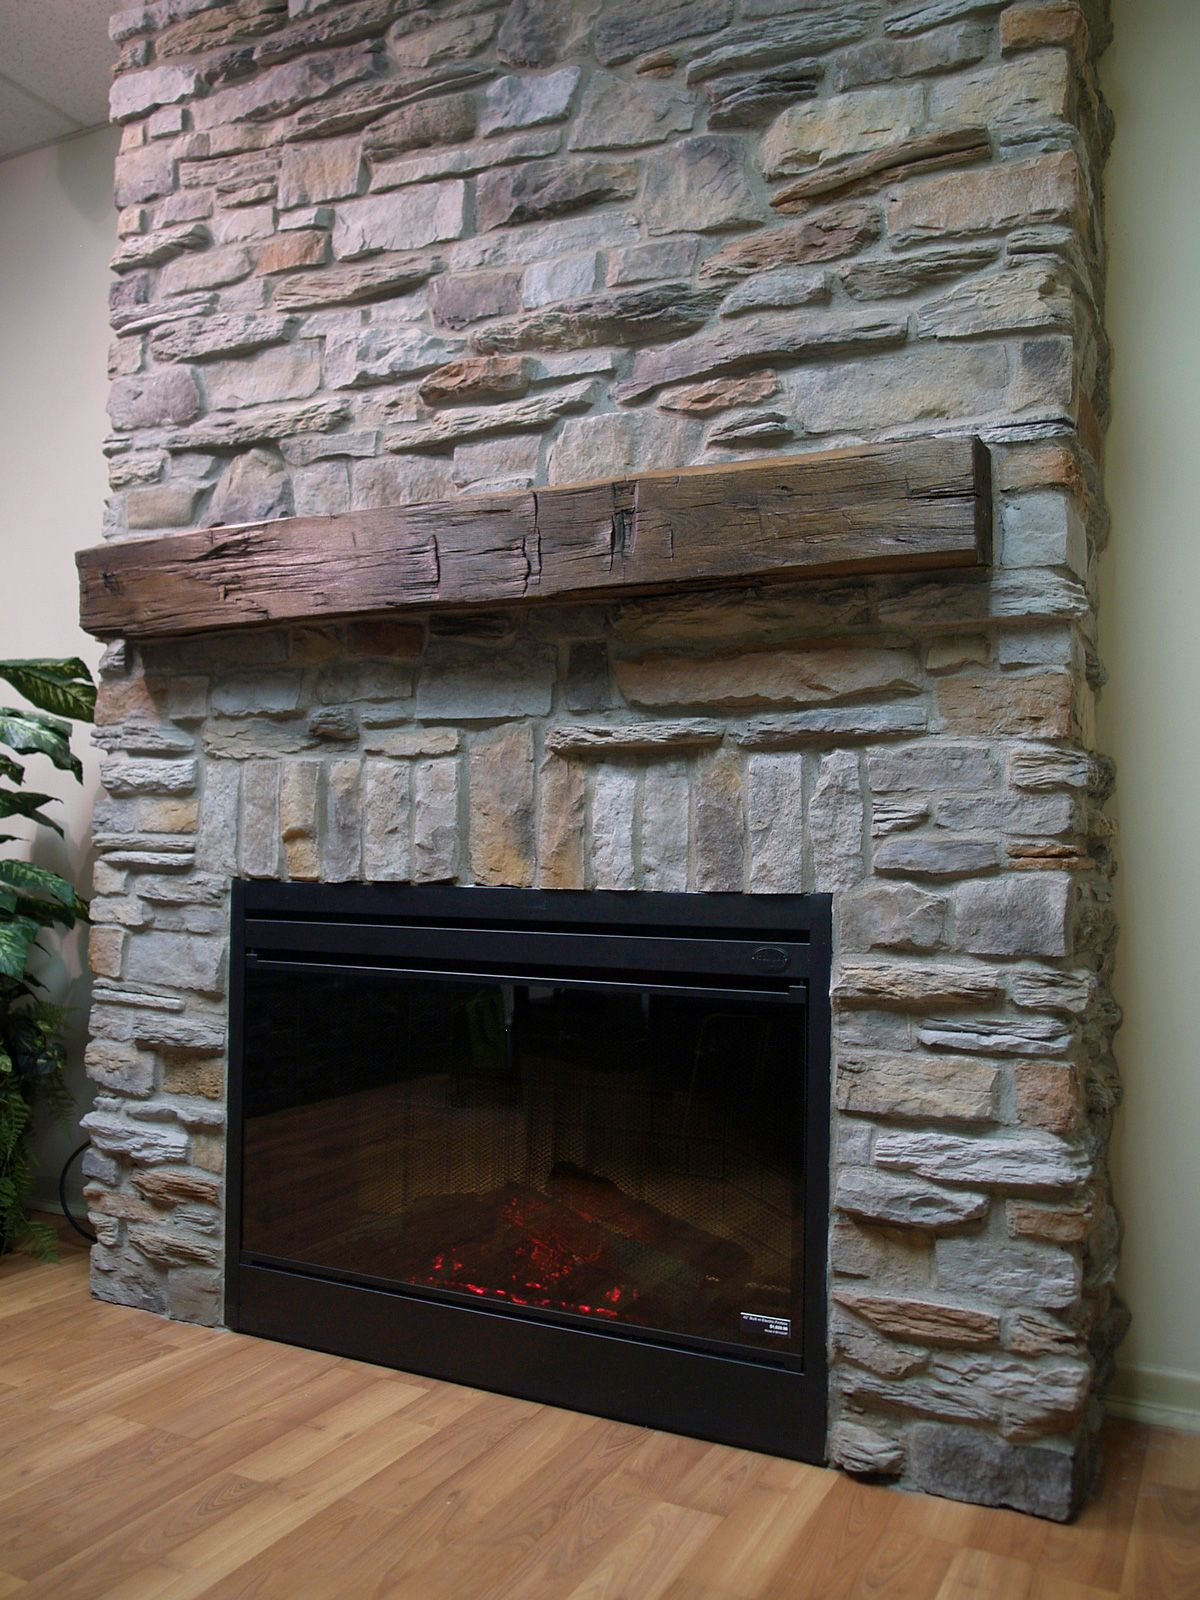 stone veneer fireplace | stone fireplace ideas using natural stone